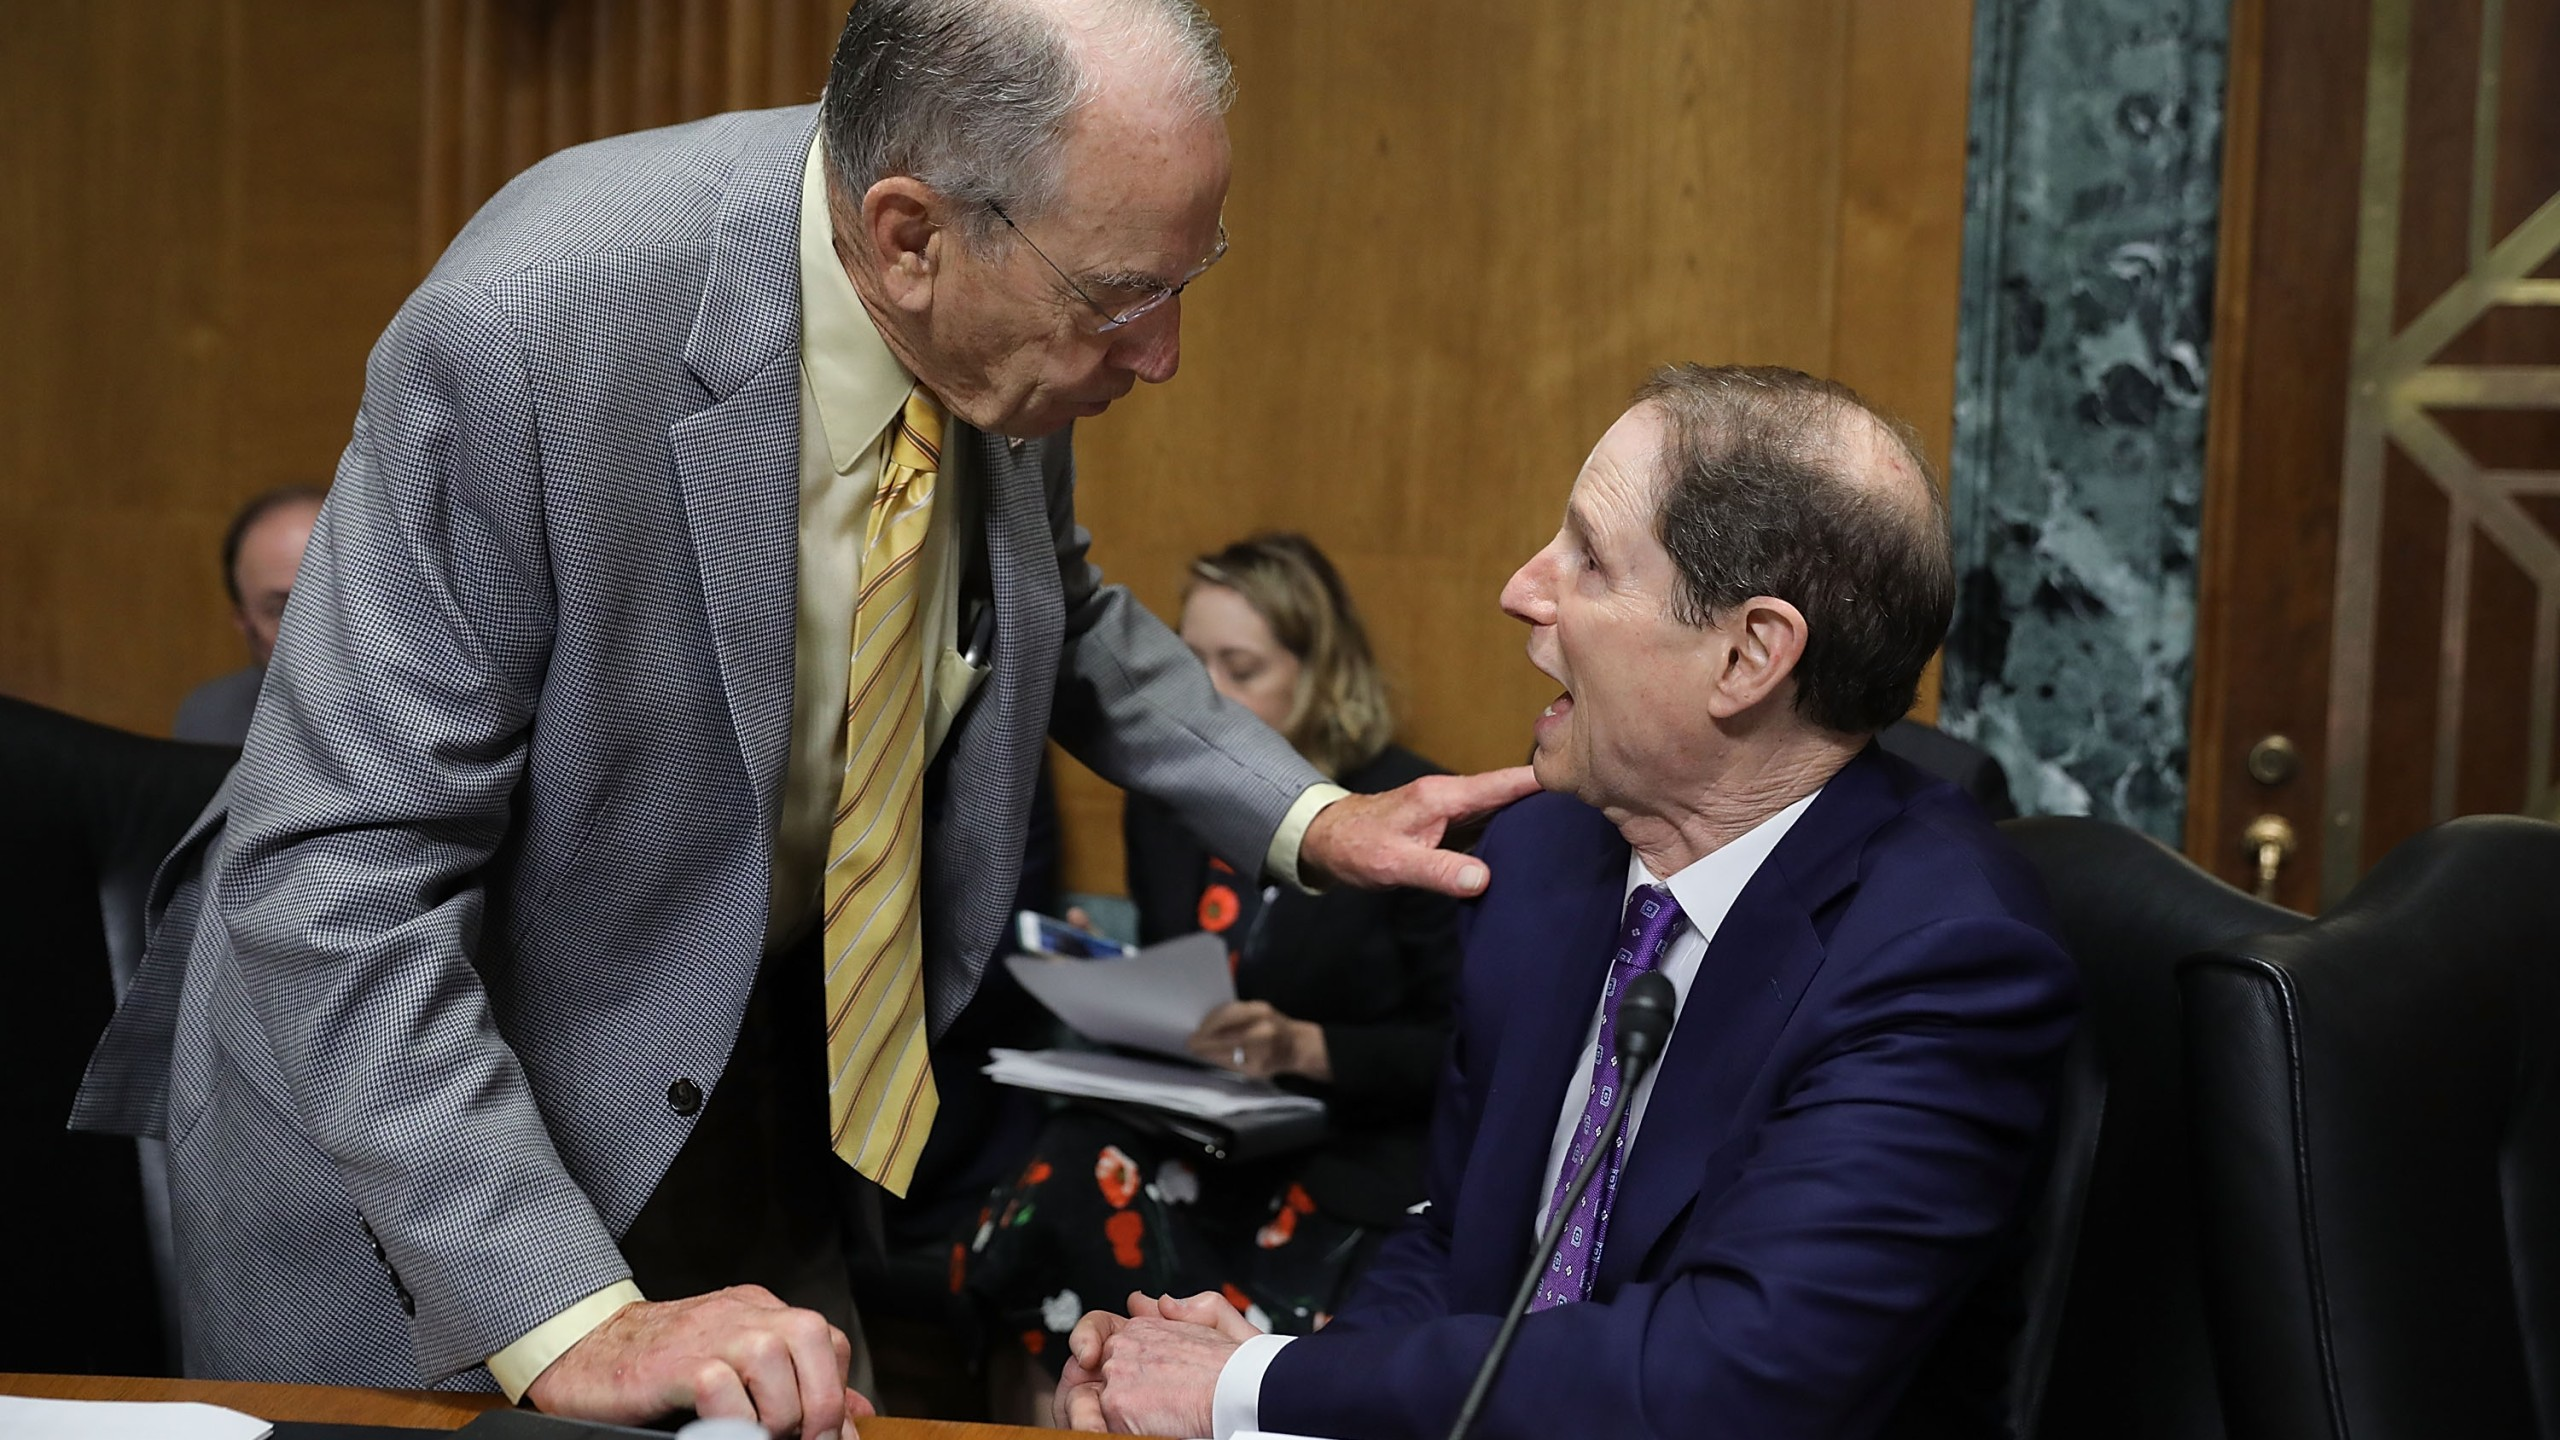 Senate Finance Committee member Sen. Charles Grassley (R-IA) (L) talks with committee ranking member Sen. Ron Wyden (D-OR) before a hearing with U.S. Secretary of Commerce Wilbur Ross in the Dirksen Senate Office Building on Capitol Hill June 20, 2018 in Washington, DC. (Credit: Chip Somodevilla/Getty Images)